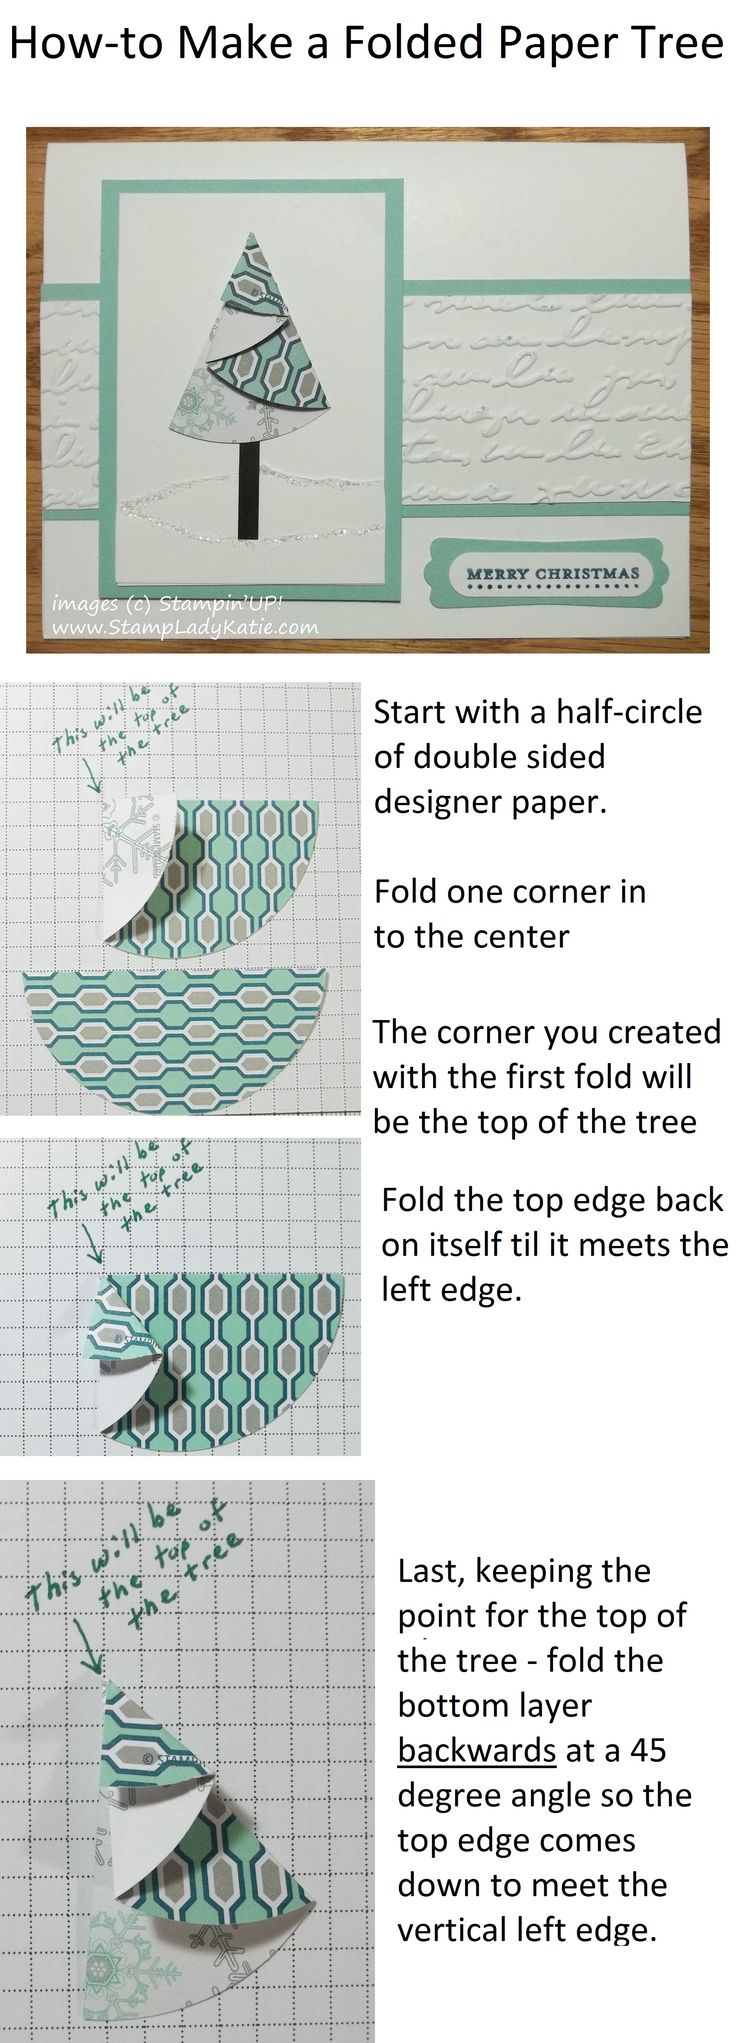 HOW-TO make a FOLDED CHRISTMAS TREE from designer paper. Works with any size circle so dig out your CIRCLE PUNCHES